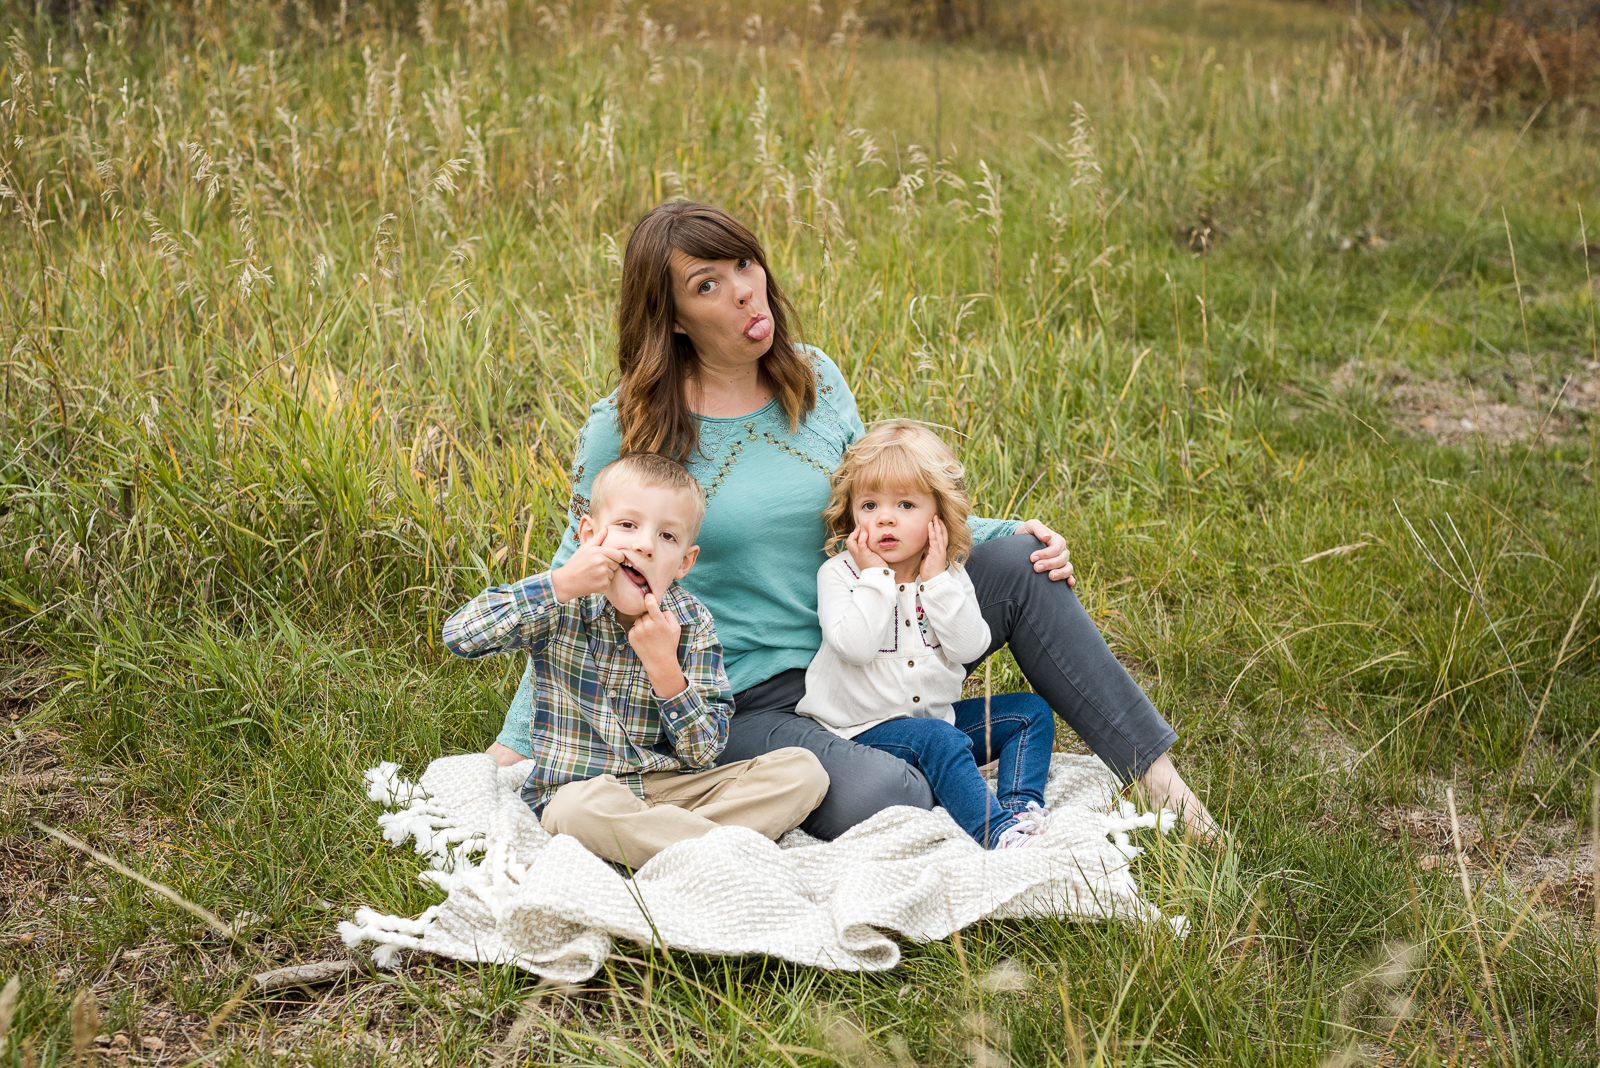 Goofy Games | Family Photo | Meyer Ranch Park | From the Hip Photo